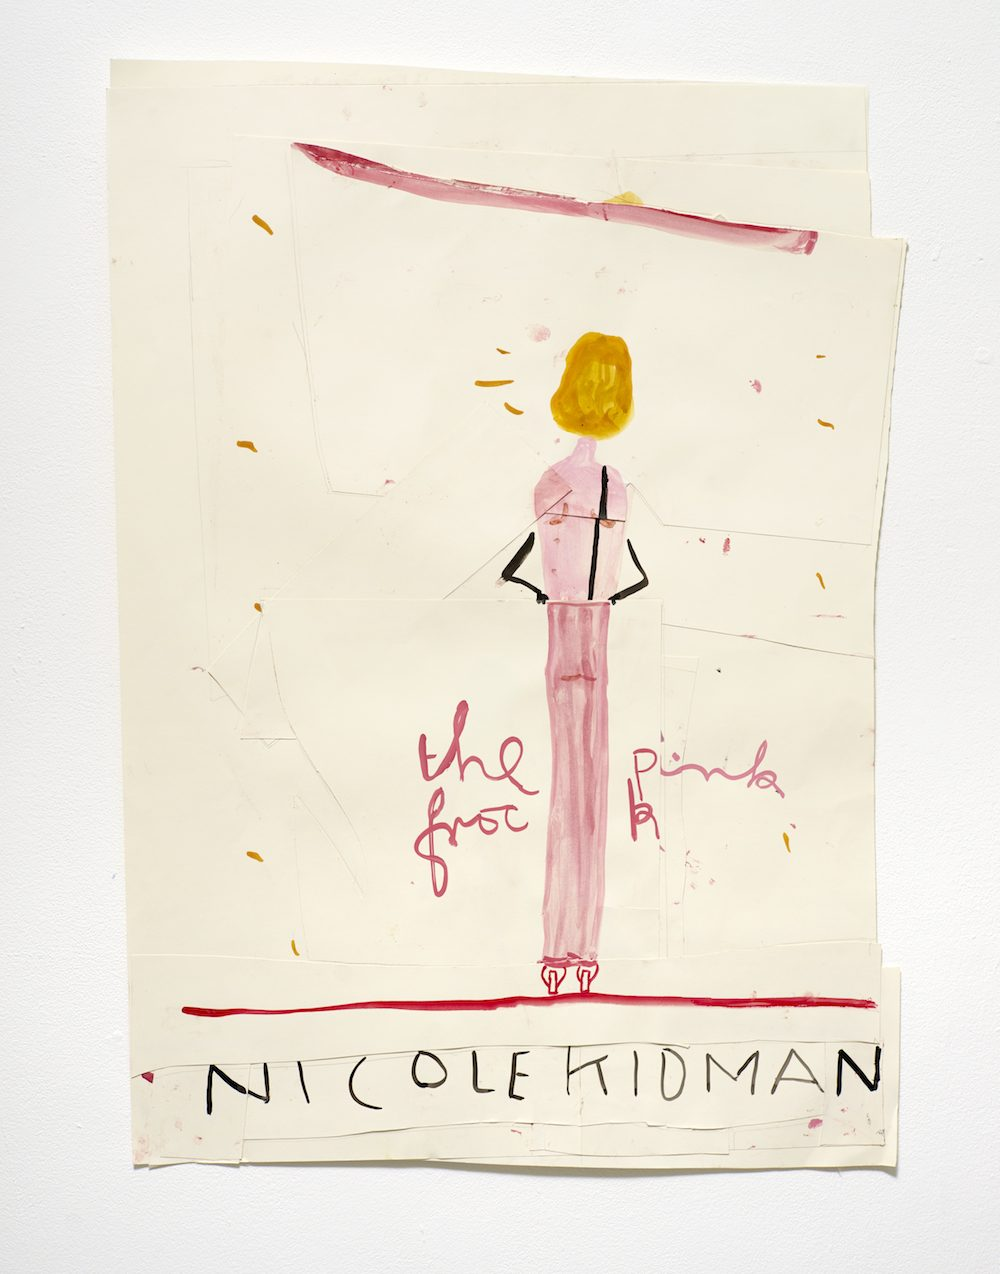 Nicole-Kidman-Pink-Frock-2015-Watercolour-and-Collage-on-Paper-A1-Rose-Wylie-1000x1274.jpg